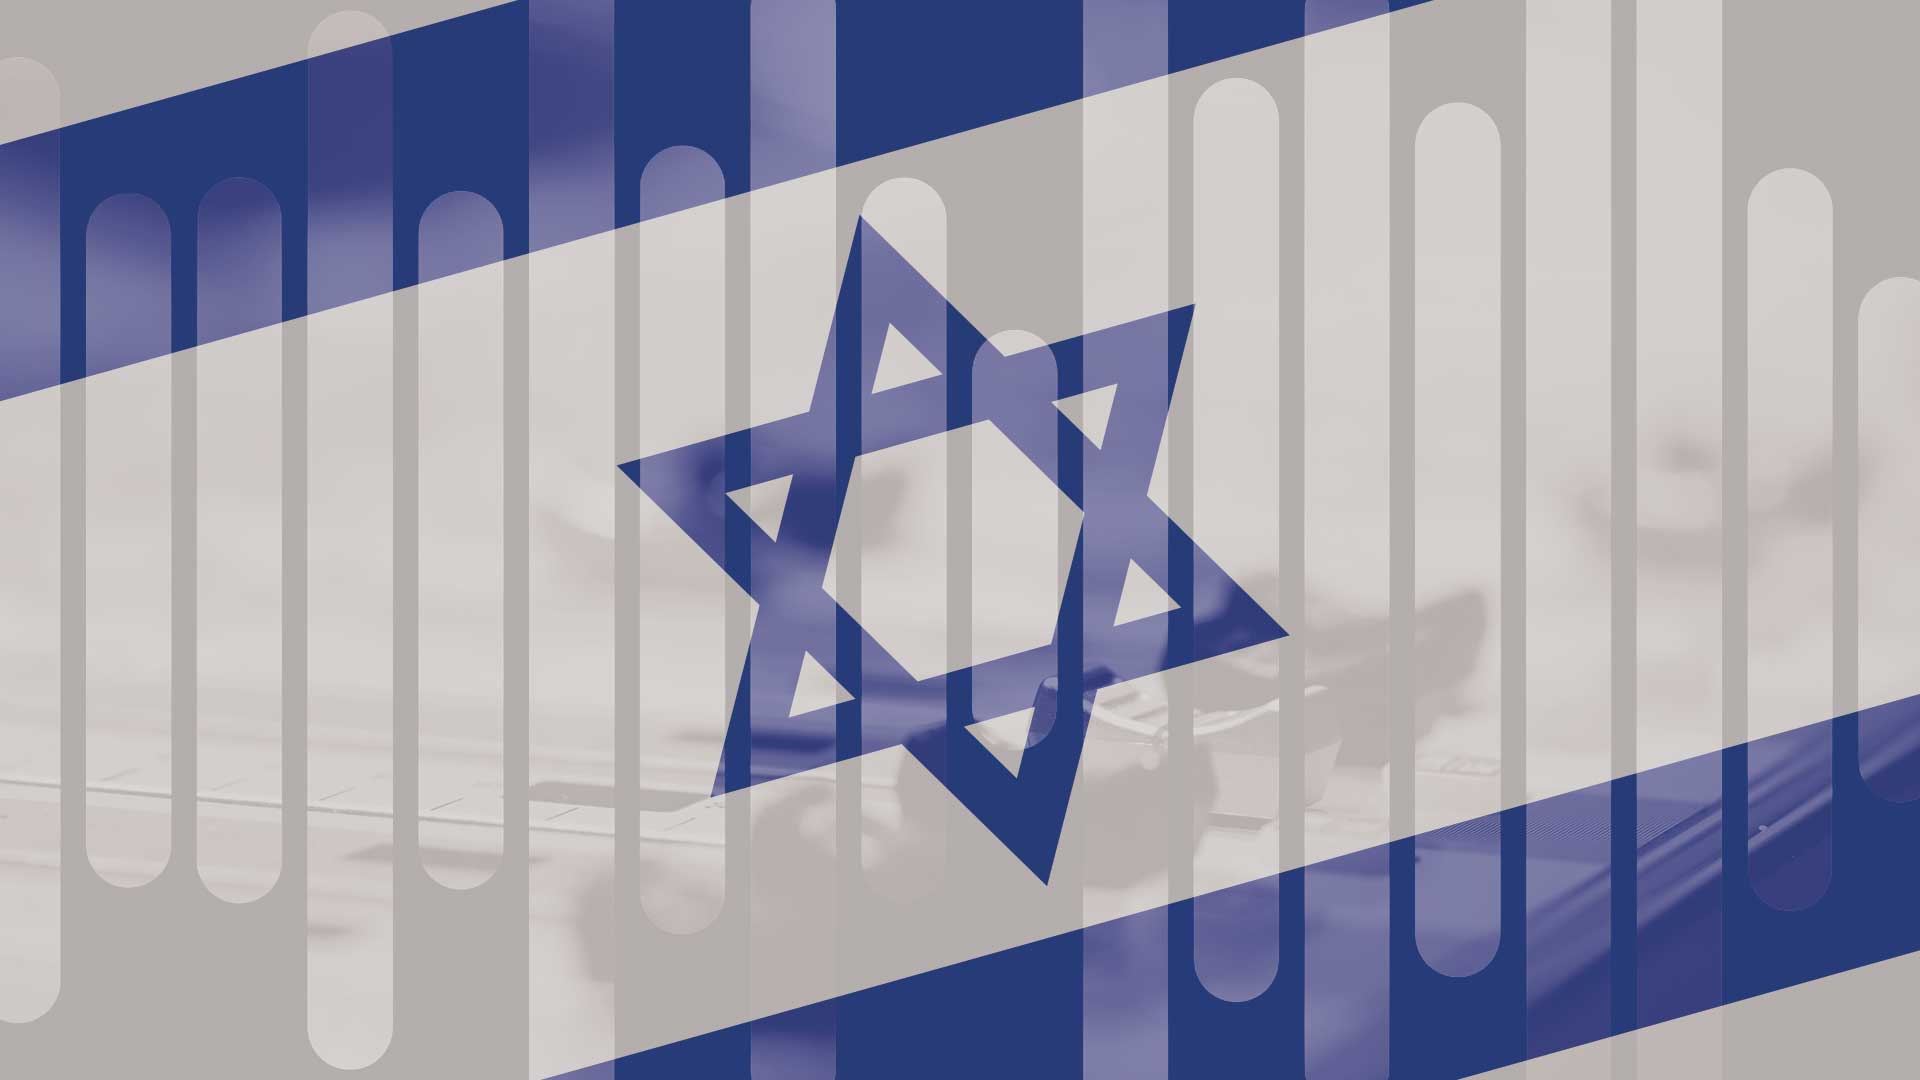 Voice-Over Services Israel - Voquent